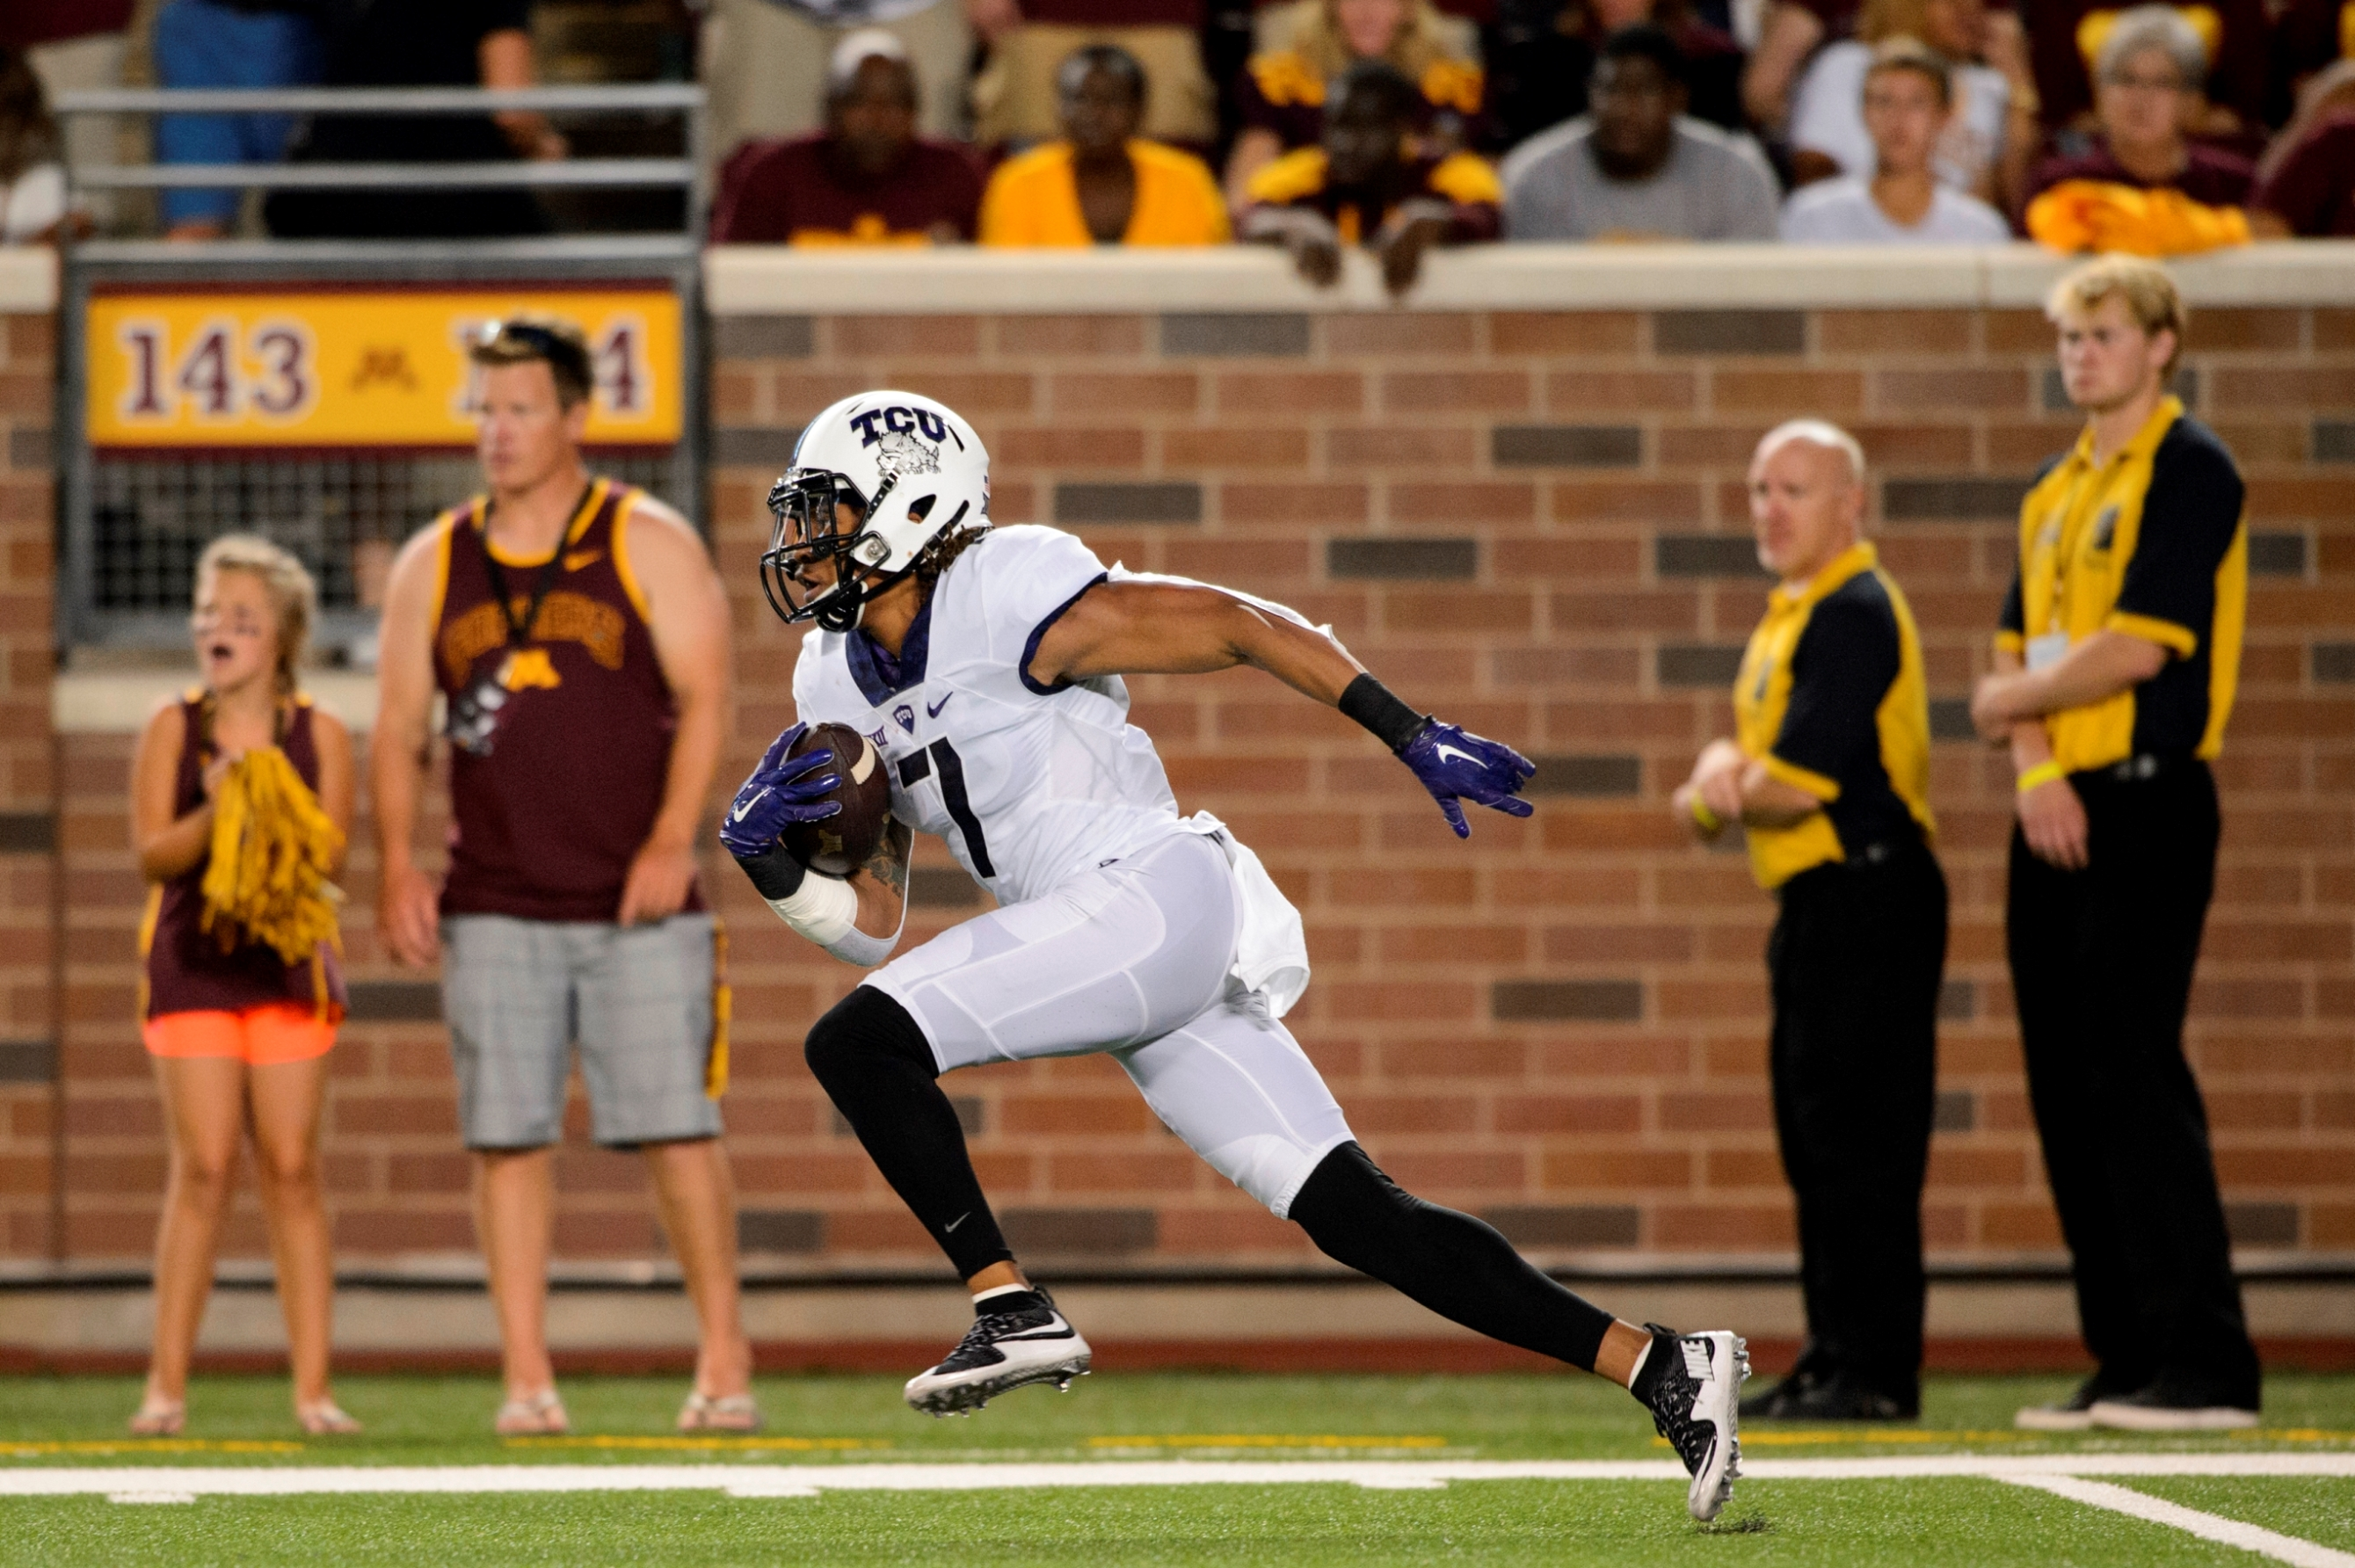 Super-fast wide receiver Kolby Listenbee strikes a track pose during a game with TCU. (Getty Images)